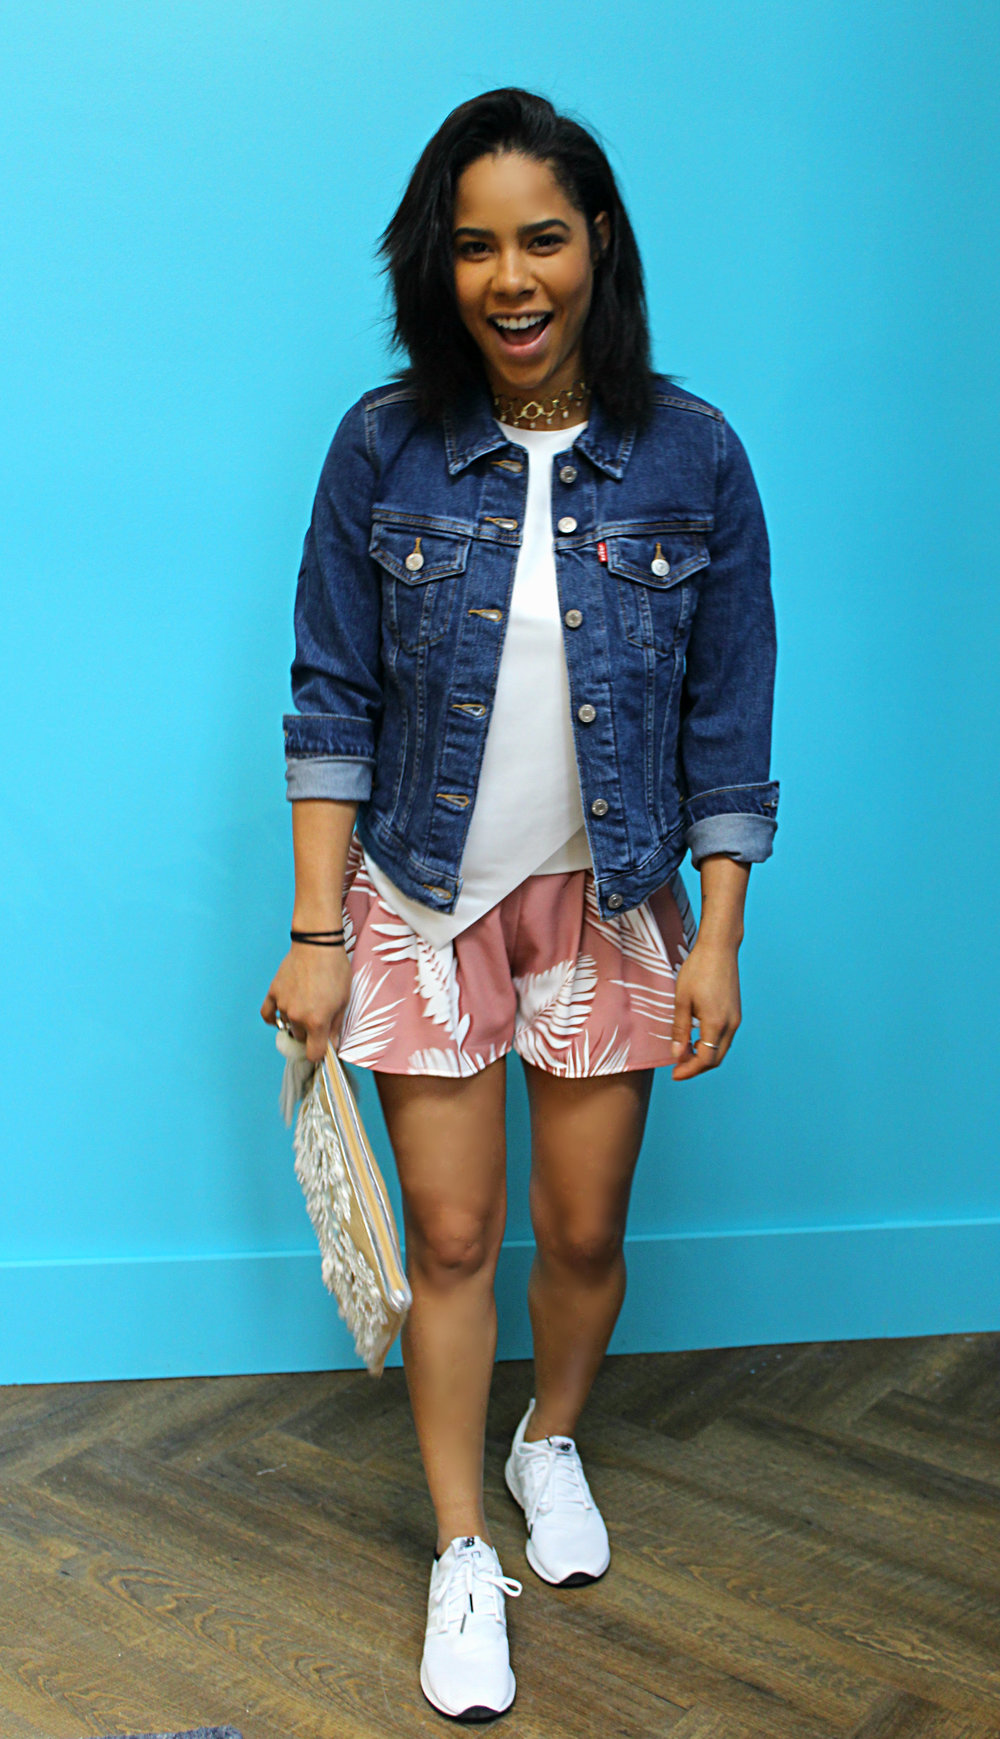 Levi's Denim Jacket $108 Ted Baker Crop Top $219 C/meo Palm Shorts $225 New Balance Sneakers $120 The 2Bandits Choker $105 Star Mela Clutch $197